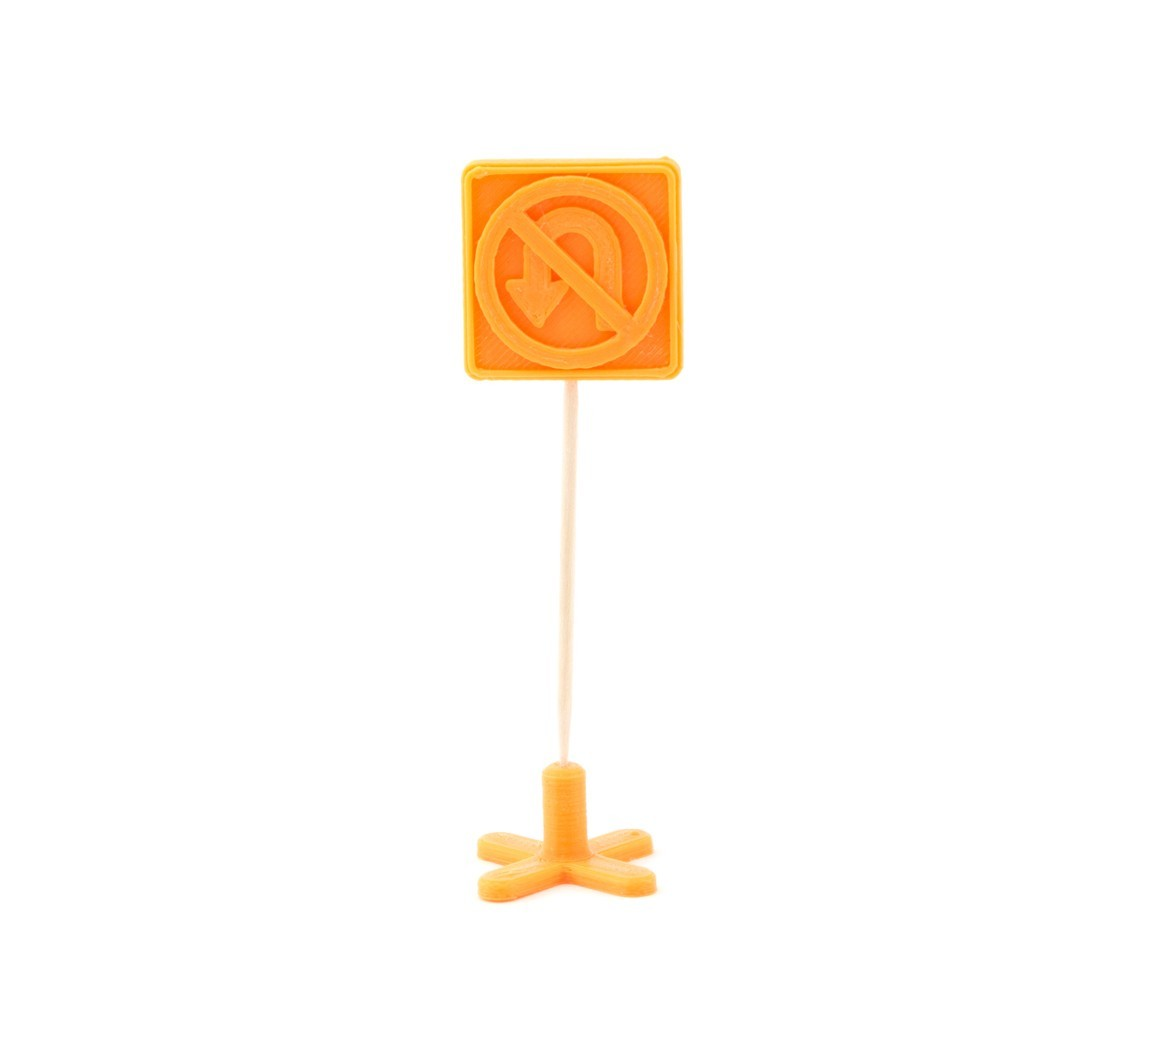 dad355512933513adea5ab2c47ce22d6_1449531094483_11.20.15-product-shoot-136.jpg Download free STL file Traffic Road Signs • 3D printable template, Emiliano_Brignito